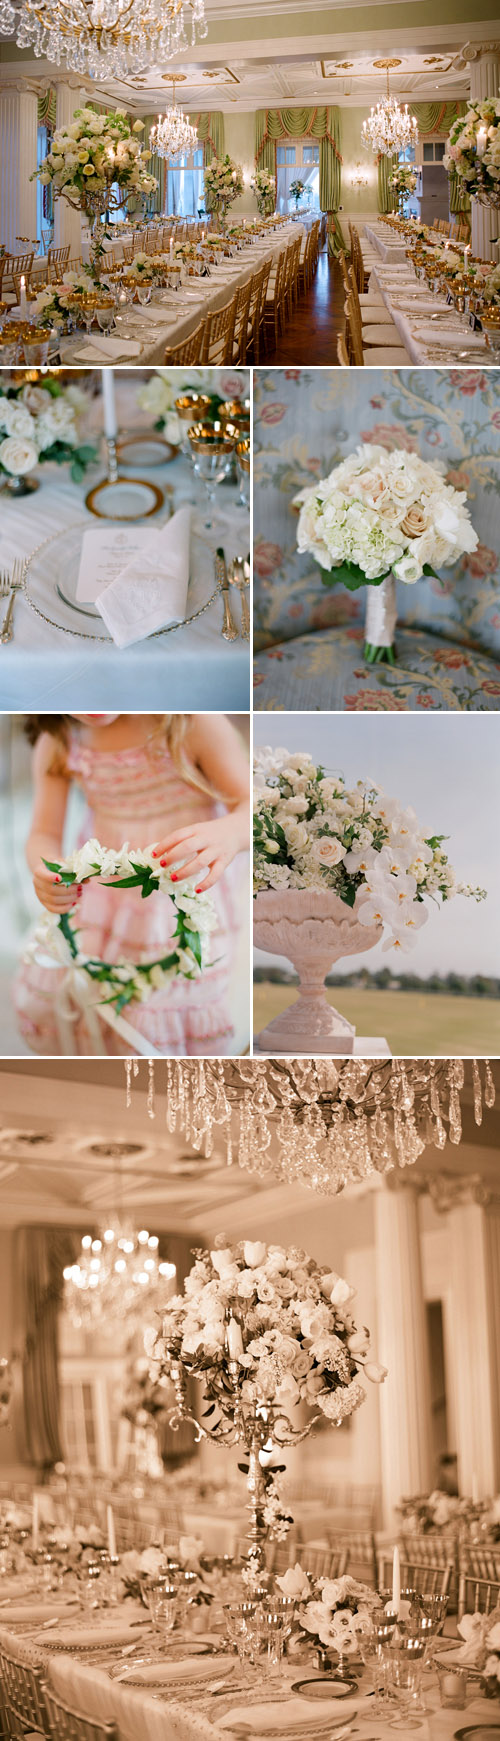 elegant romantic wedding decor, design by Lisa Gorjestani of Details Event Planning, photos by Elizabeth Messina